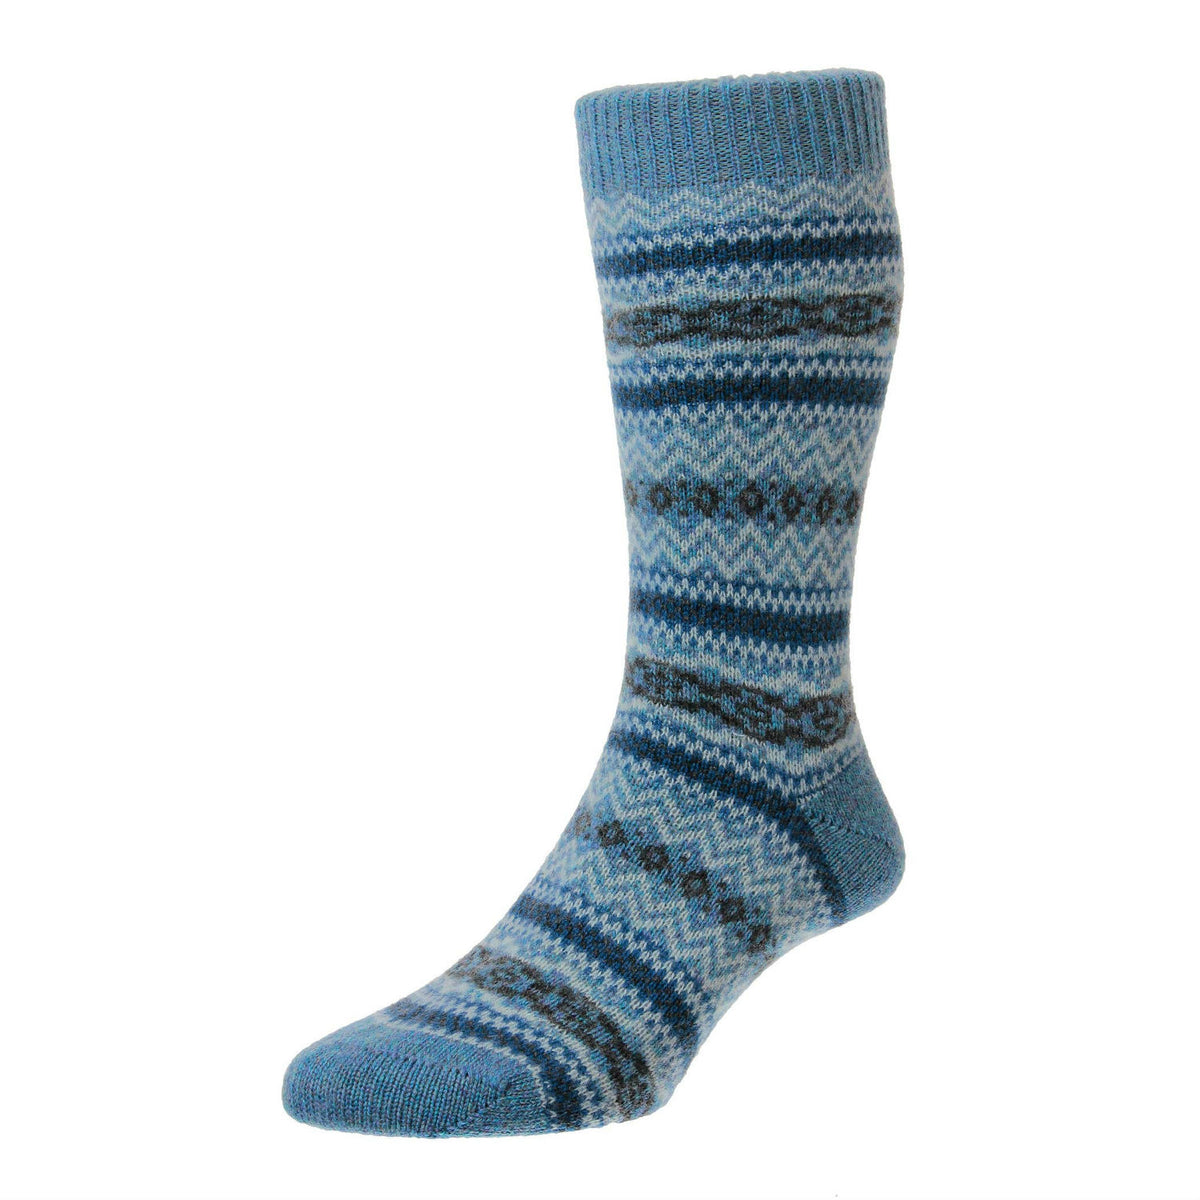 Loch Marl Blue | Mens Cashmere Socks | Made in England | Fairisle Sock | buy now at The Cashmere Choice London